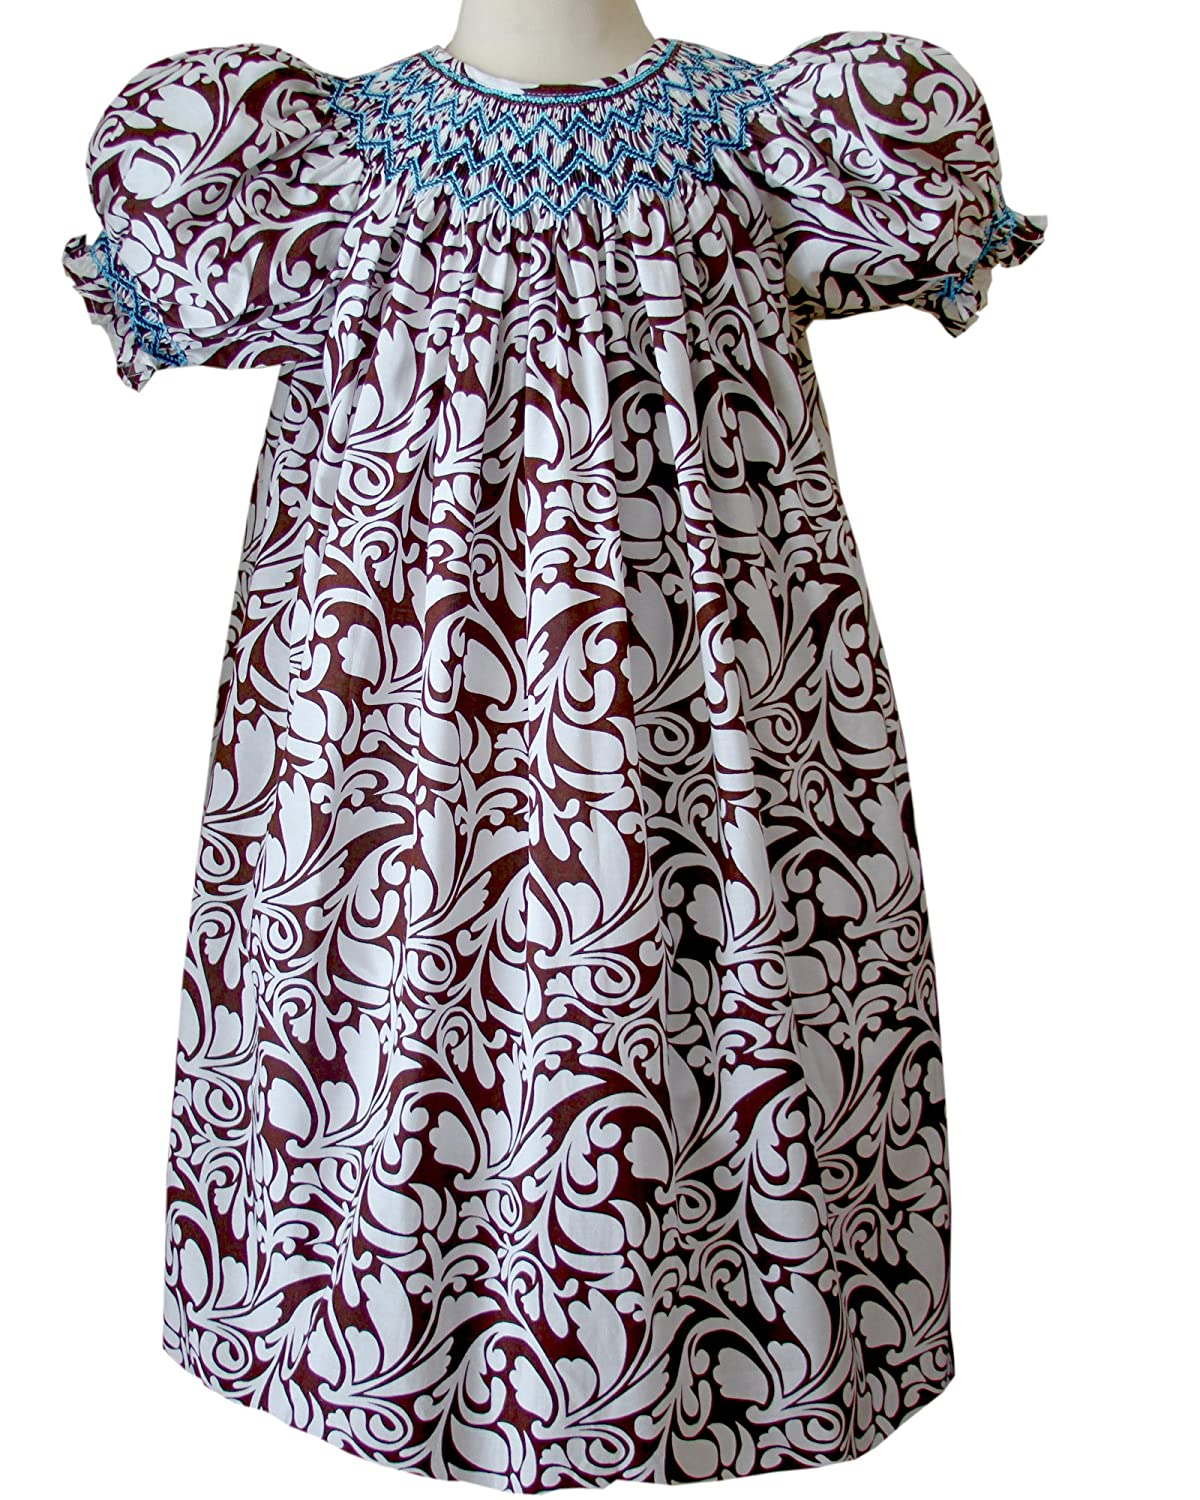 2b72c78d58e9 Amazon.com: Carouselwear Toddler Girls Smocked Bishop Dresses for Fall and  Thanksgiving: Clothing